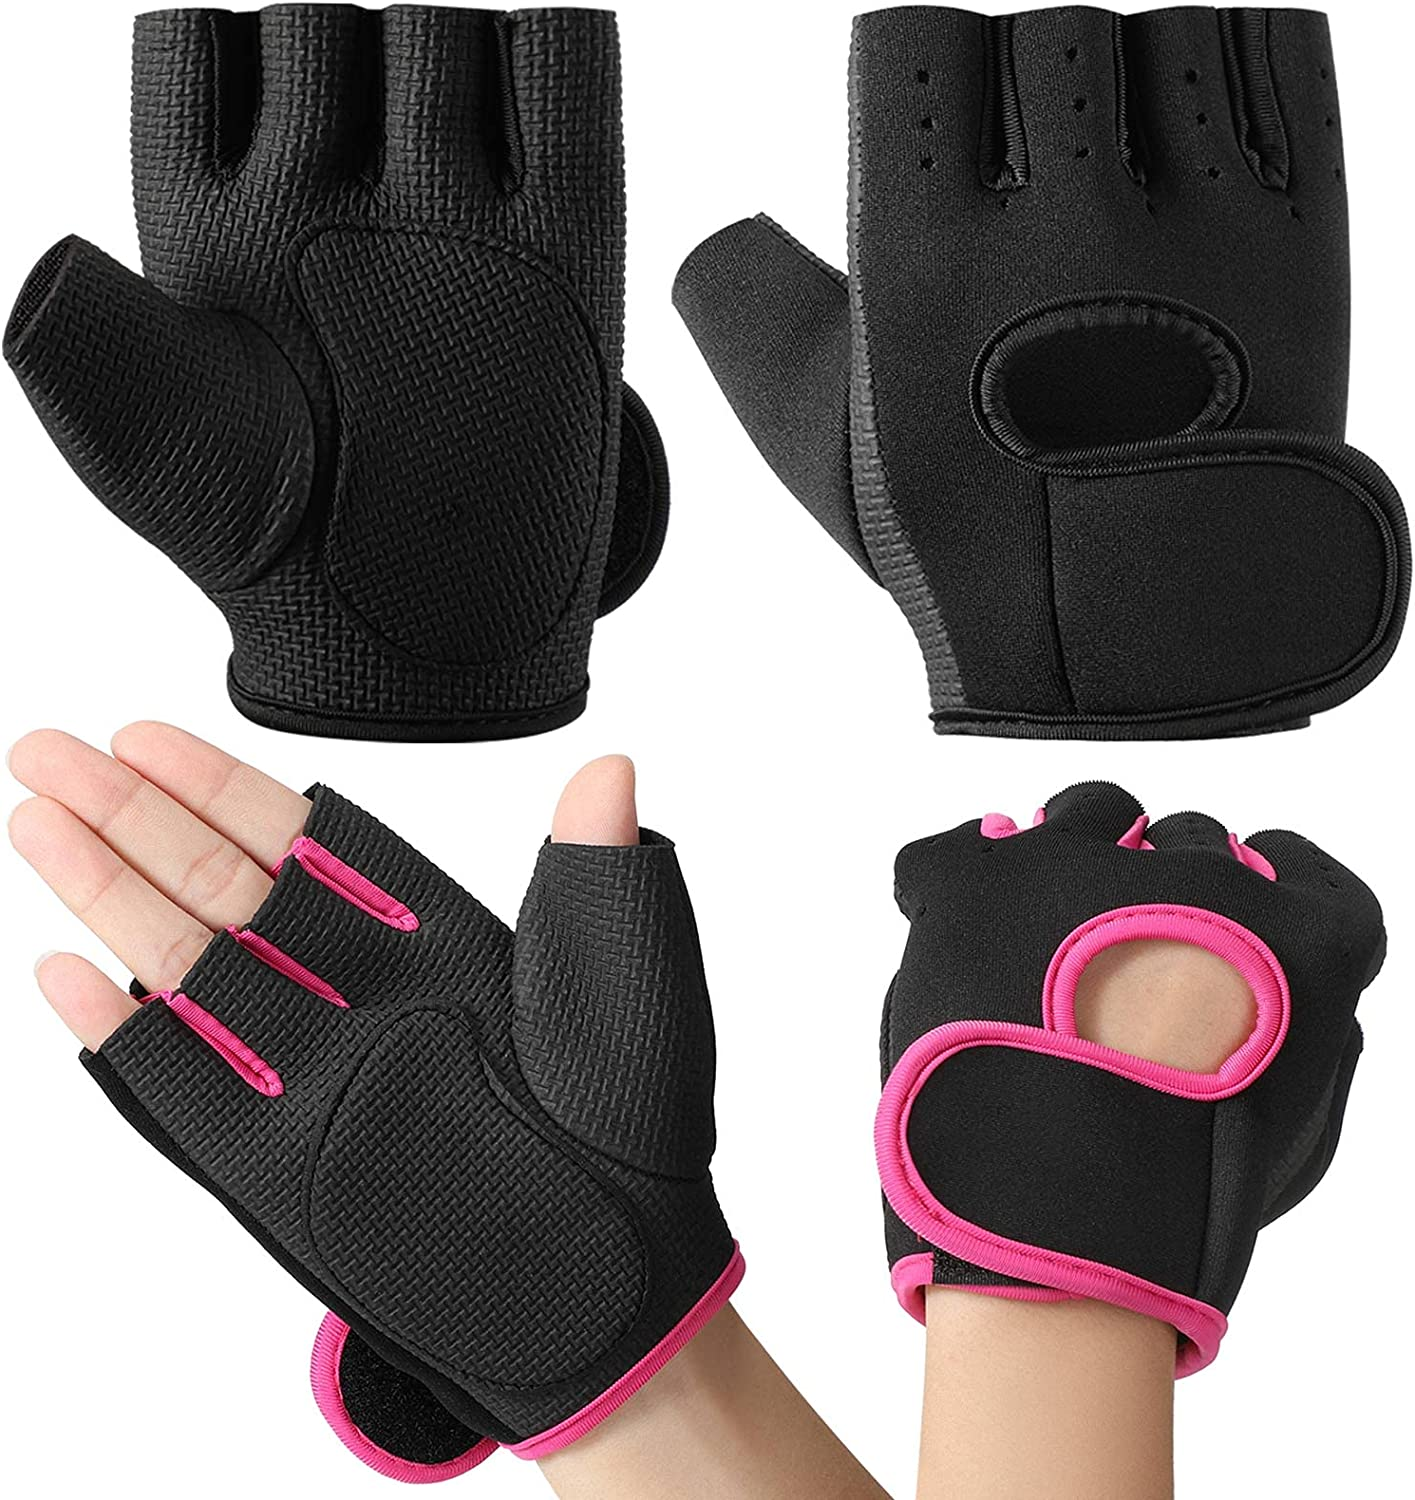 2 Pairs Women's Max 90% OFF Exercise Gloves Fitness Gym Boston Mall Worko Workout